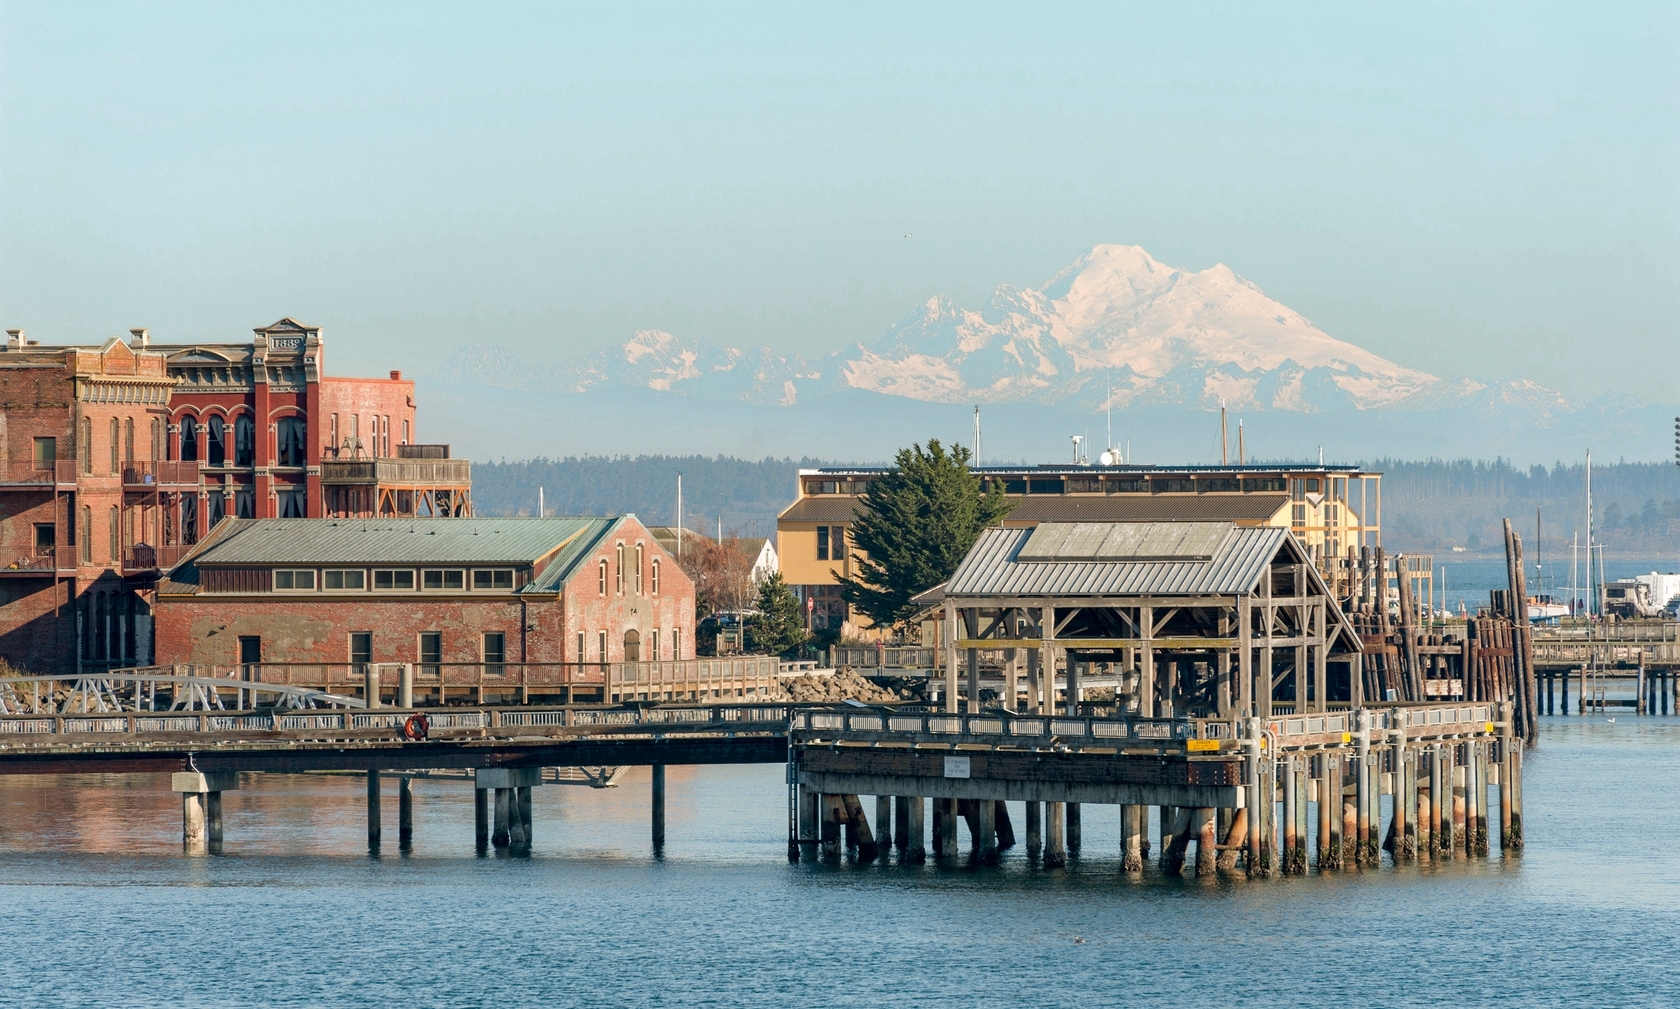 Vacation rentals in Port Townsend